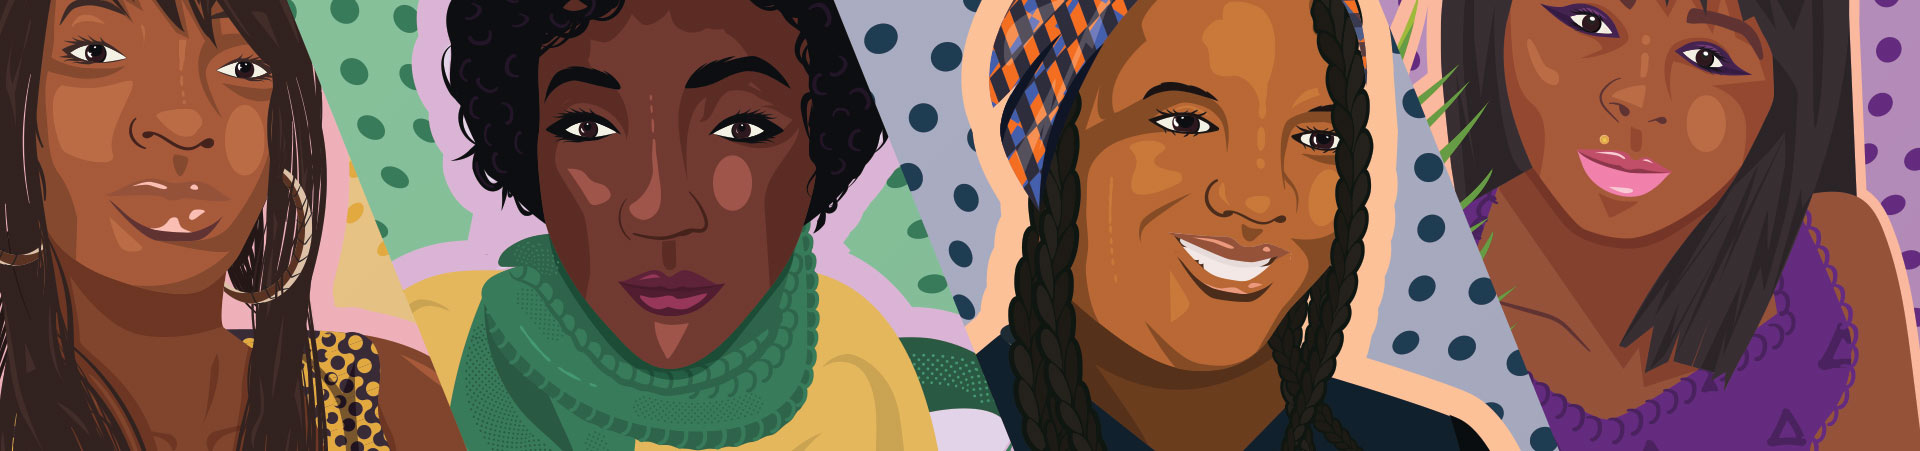 #SayHerName campaign banner features 4 portrait illustrations of women kill